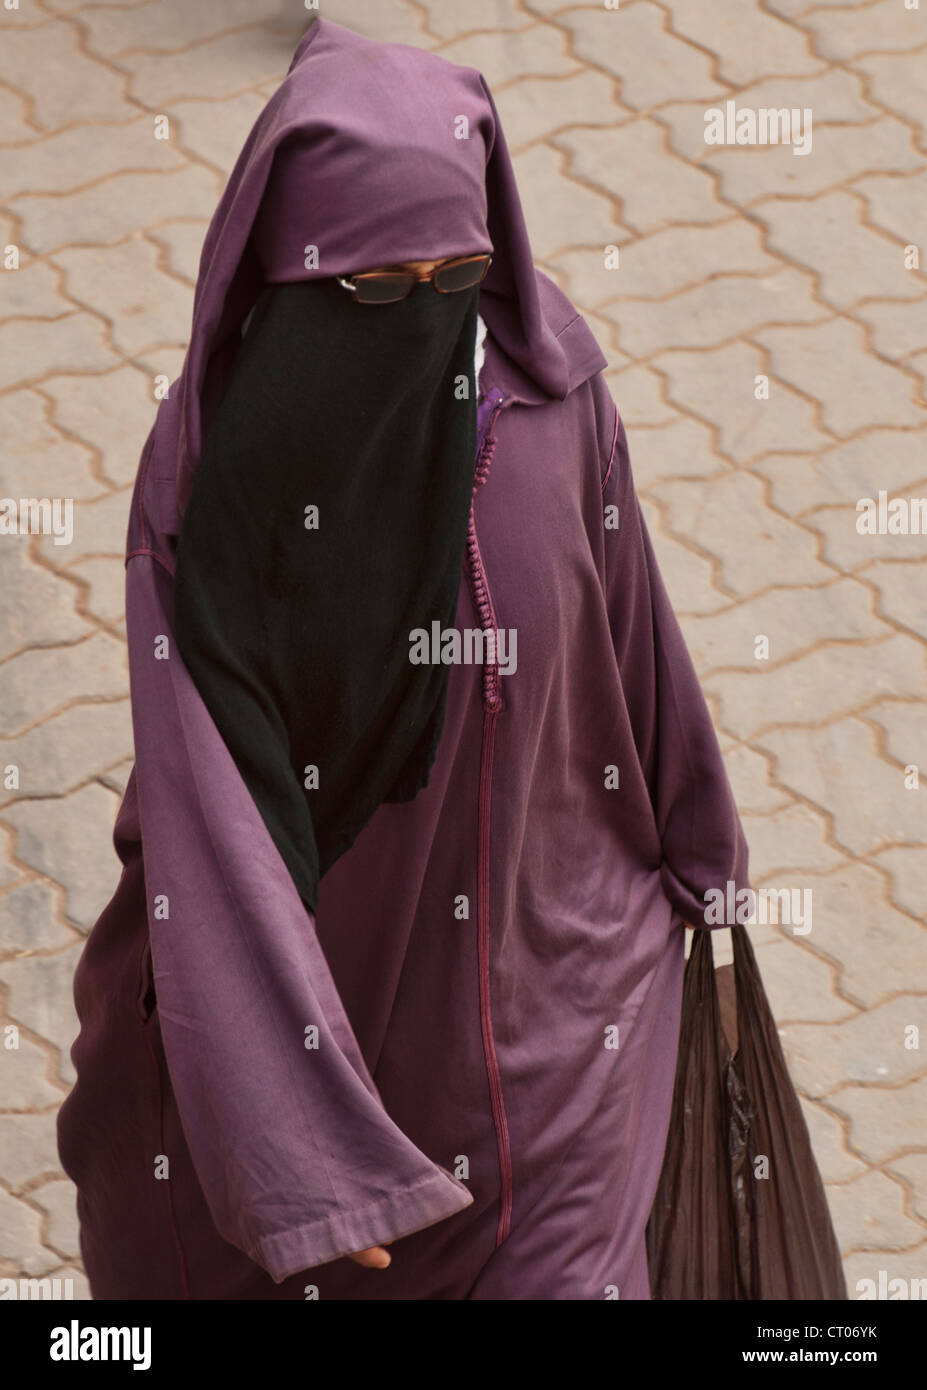 978c05f2ef31 Hijab In Morocco Photos   Hijab In Morocco Images - Alamy